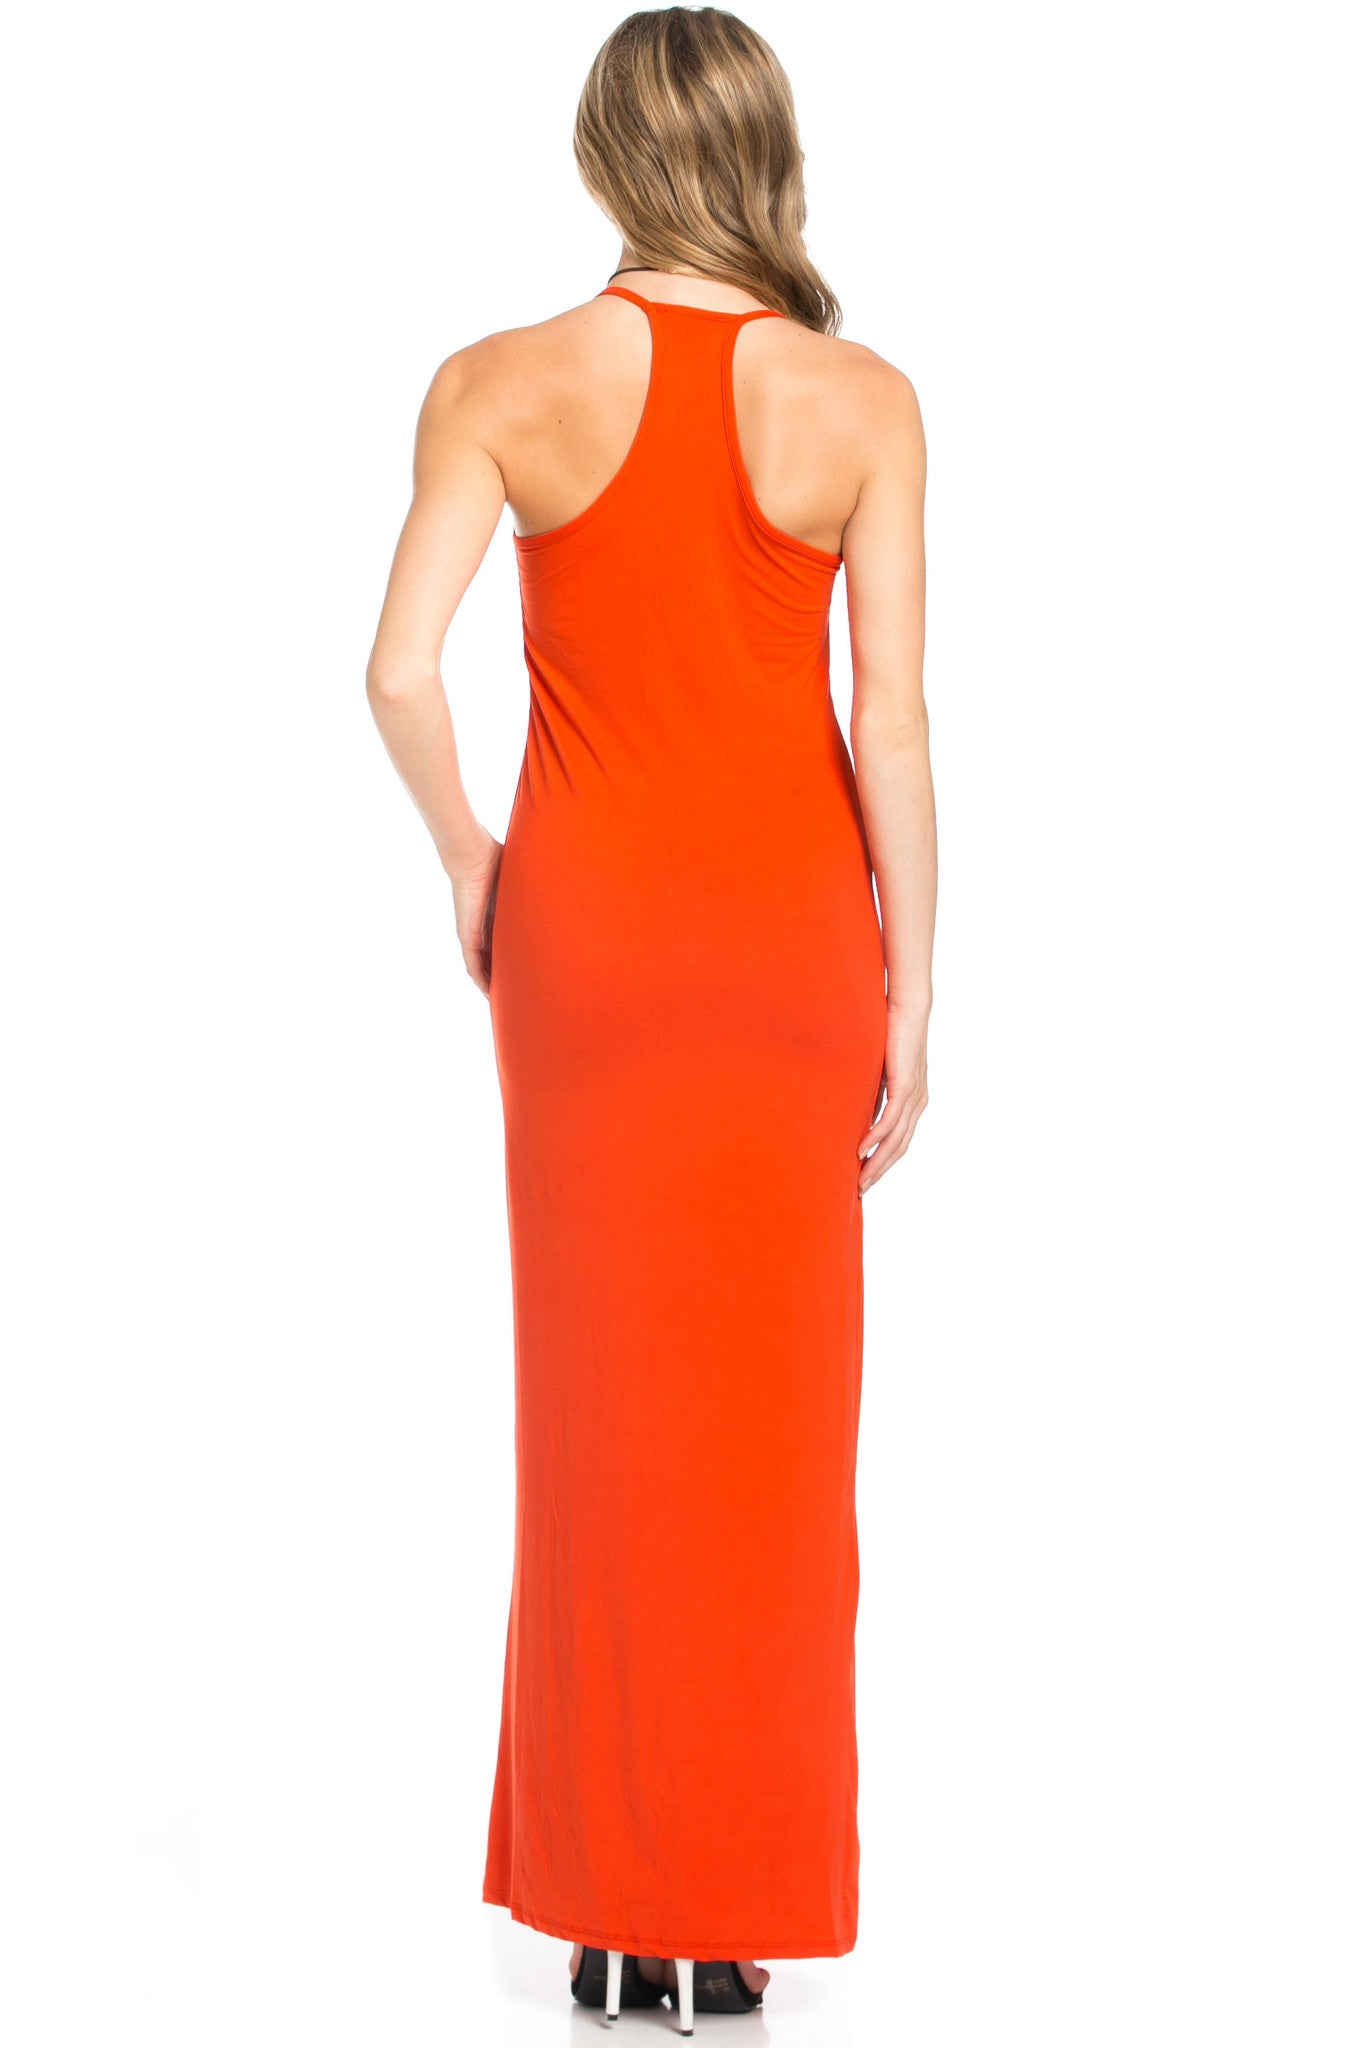 Micro Suede Tomato Maxi Dress - Dresses - My Yuccie - 3